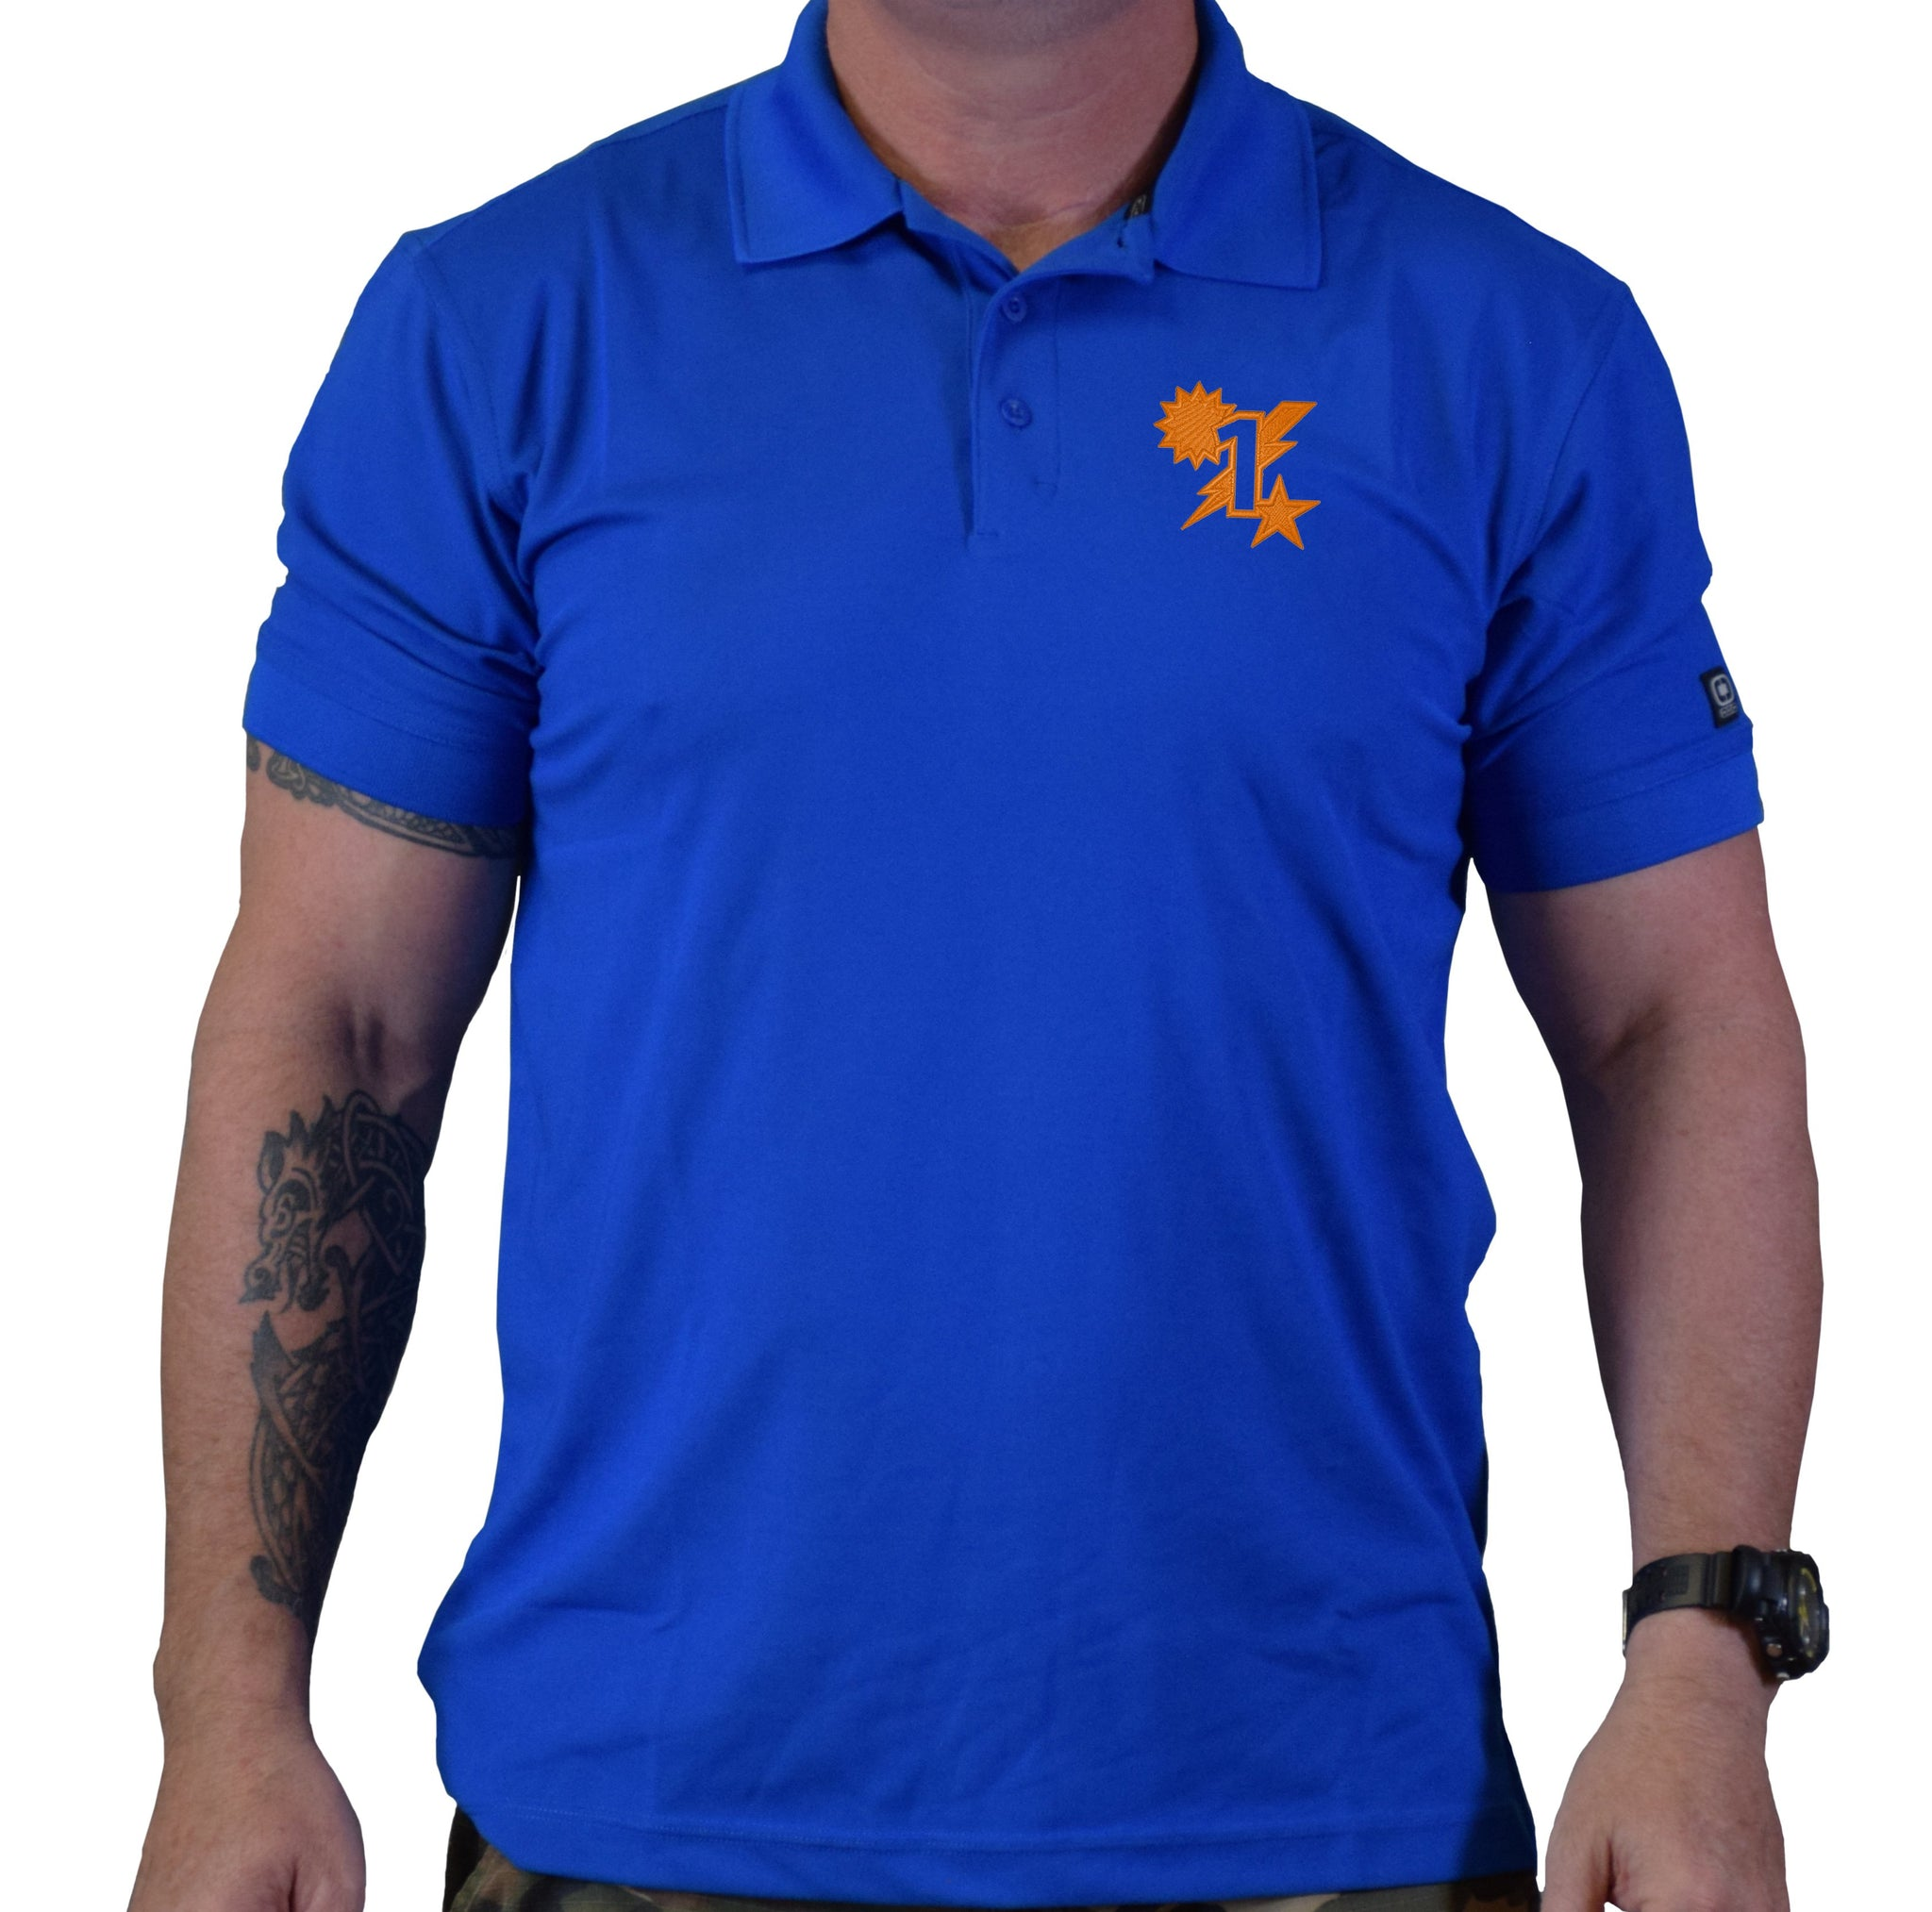 1st Batt Star Sun Bolt Polo